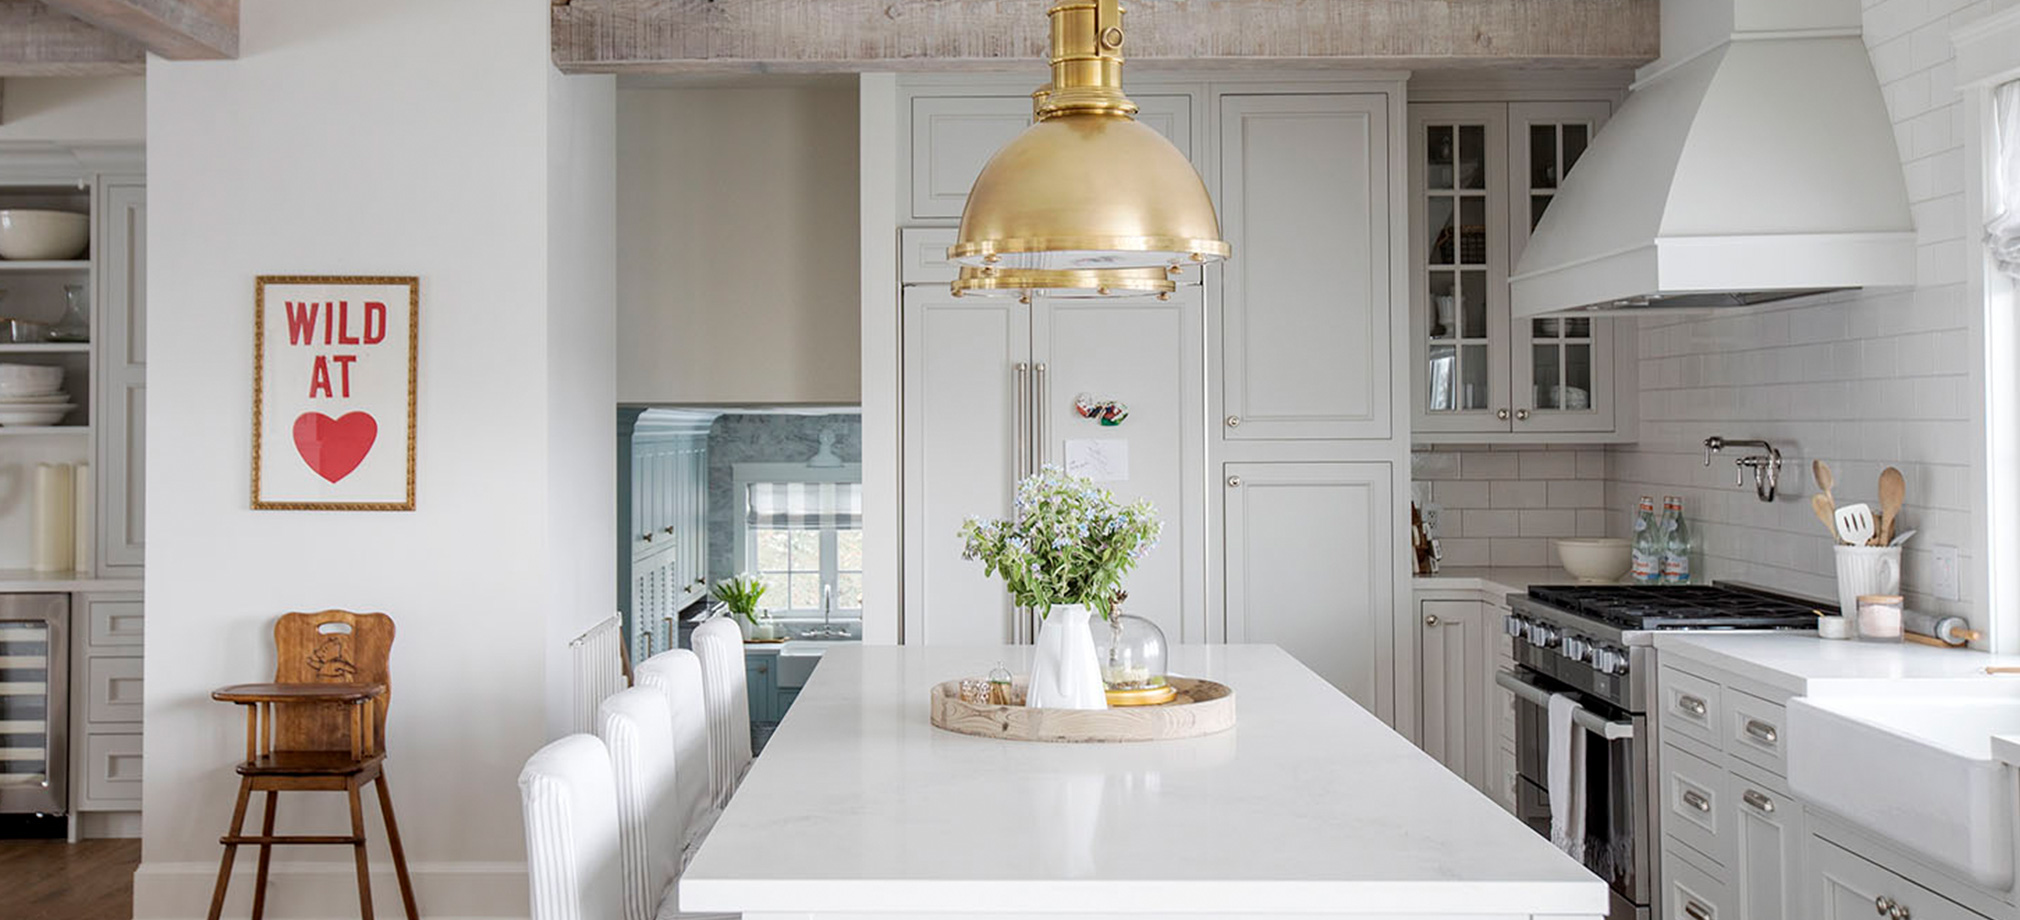 jillian-harris-kitchen